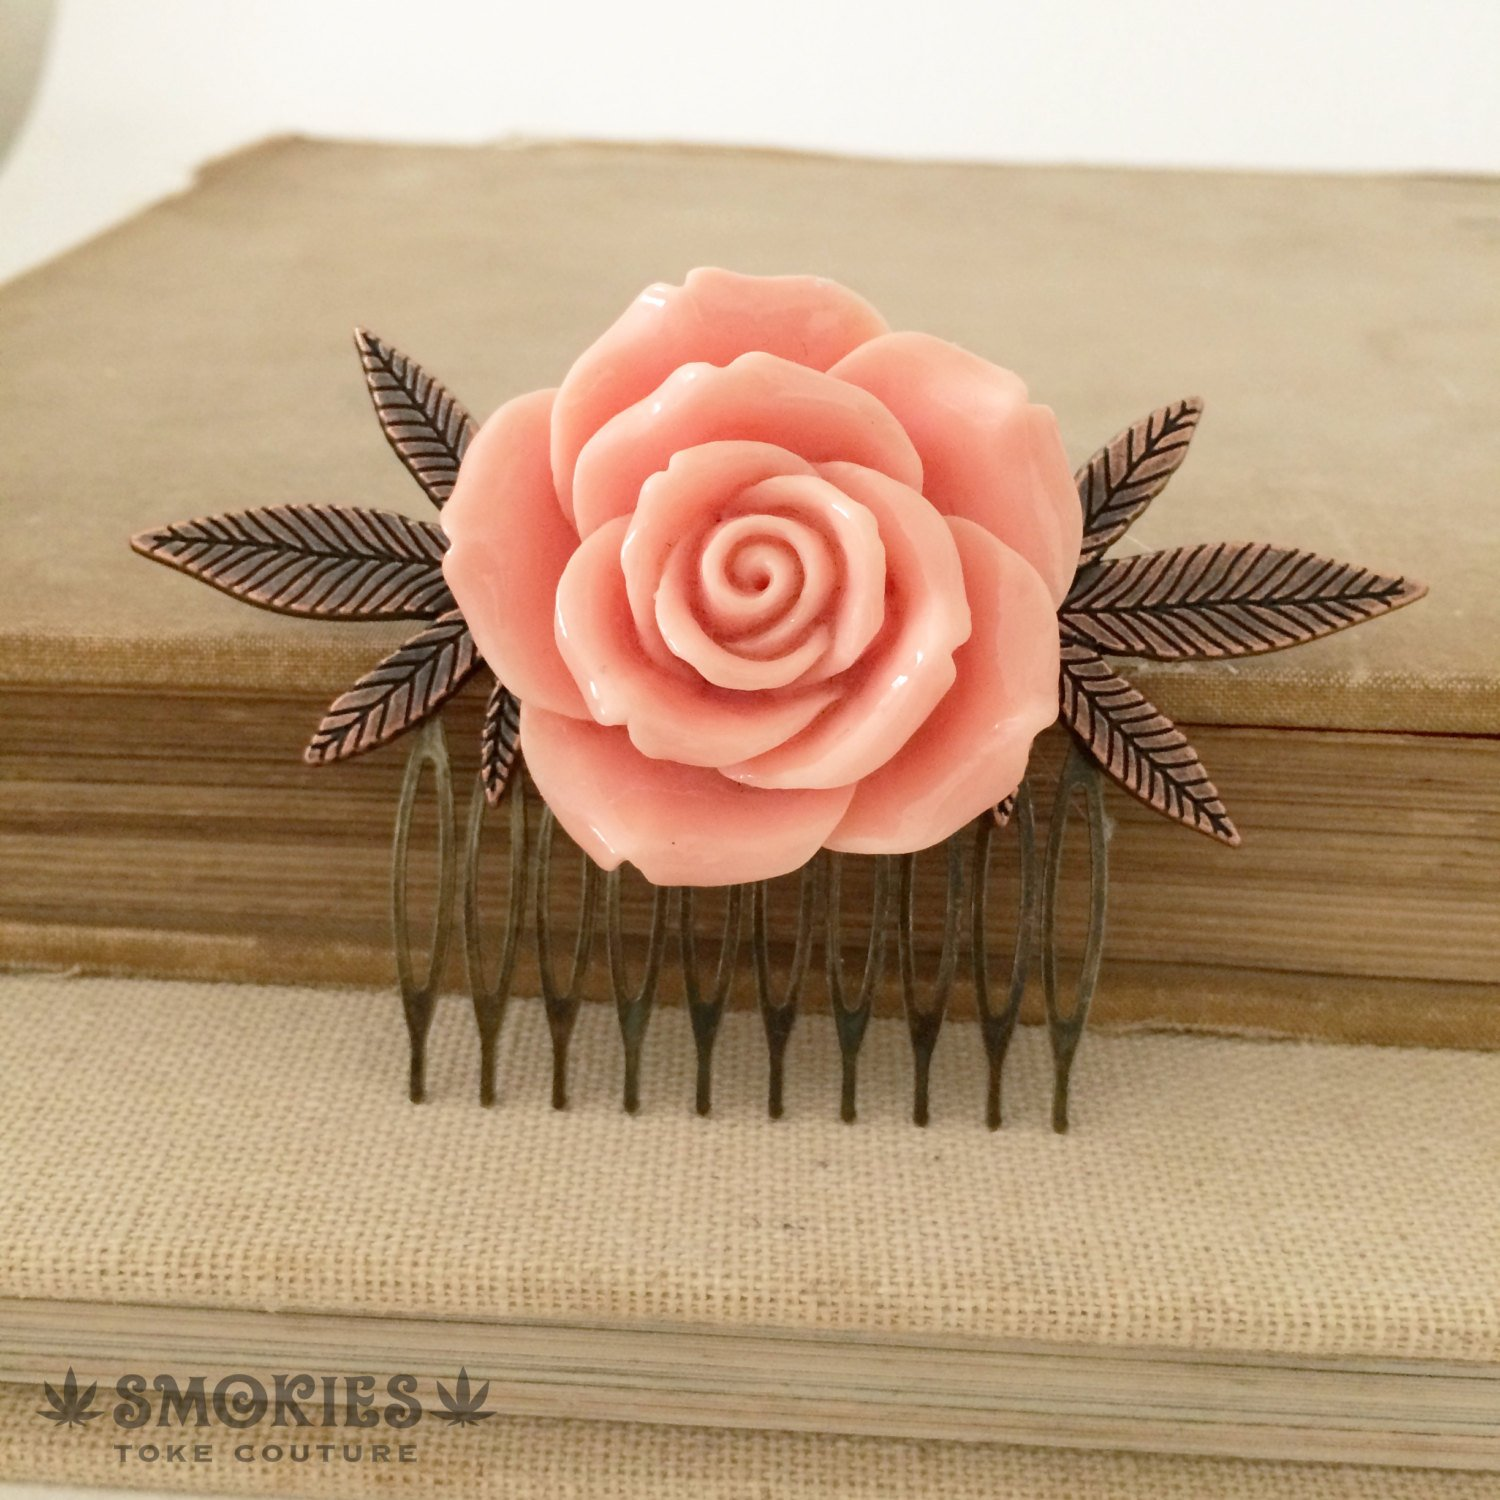 weed gift, stoner gift, weed accessories, girly, hair clip, Marijuana hair accessories,rose comb cannabis accessory CORAL COPPER